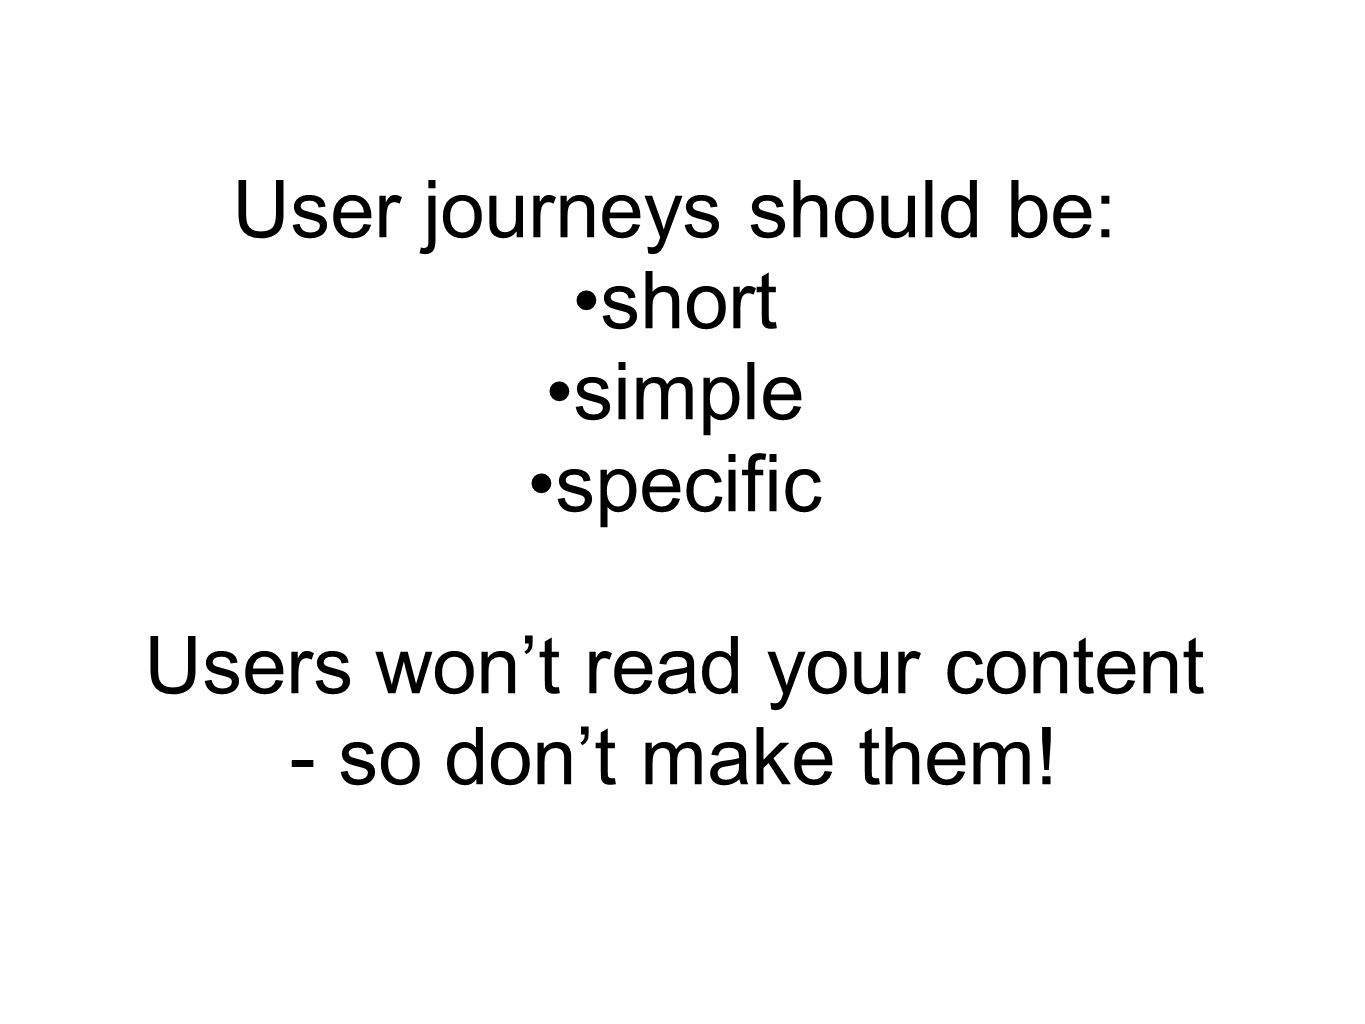 User journeys should be: short simple specific Users won't read your content - so don't make them!